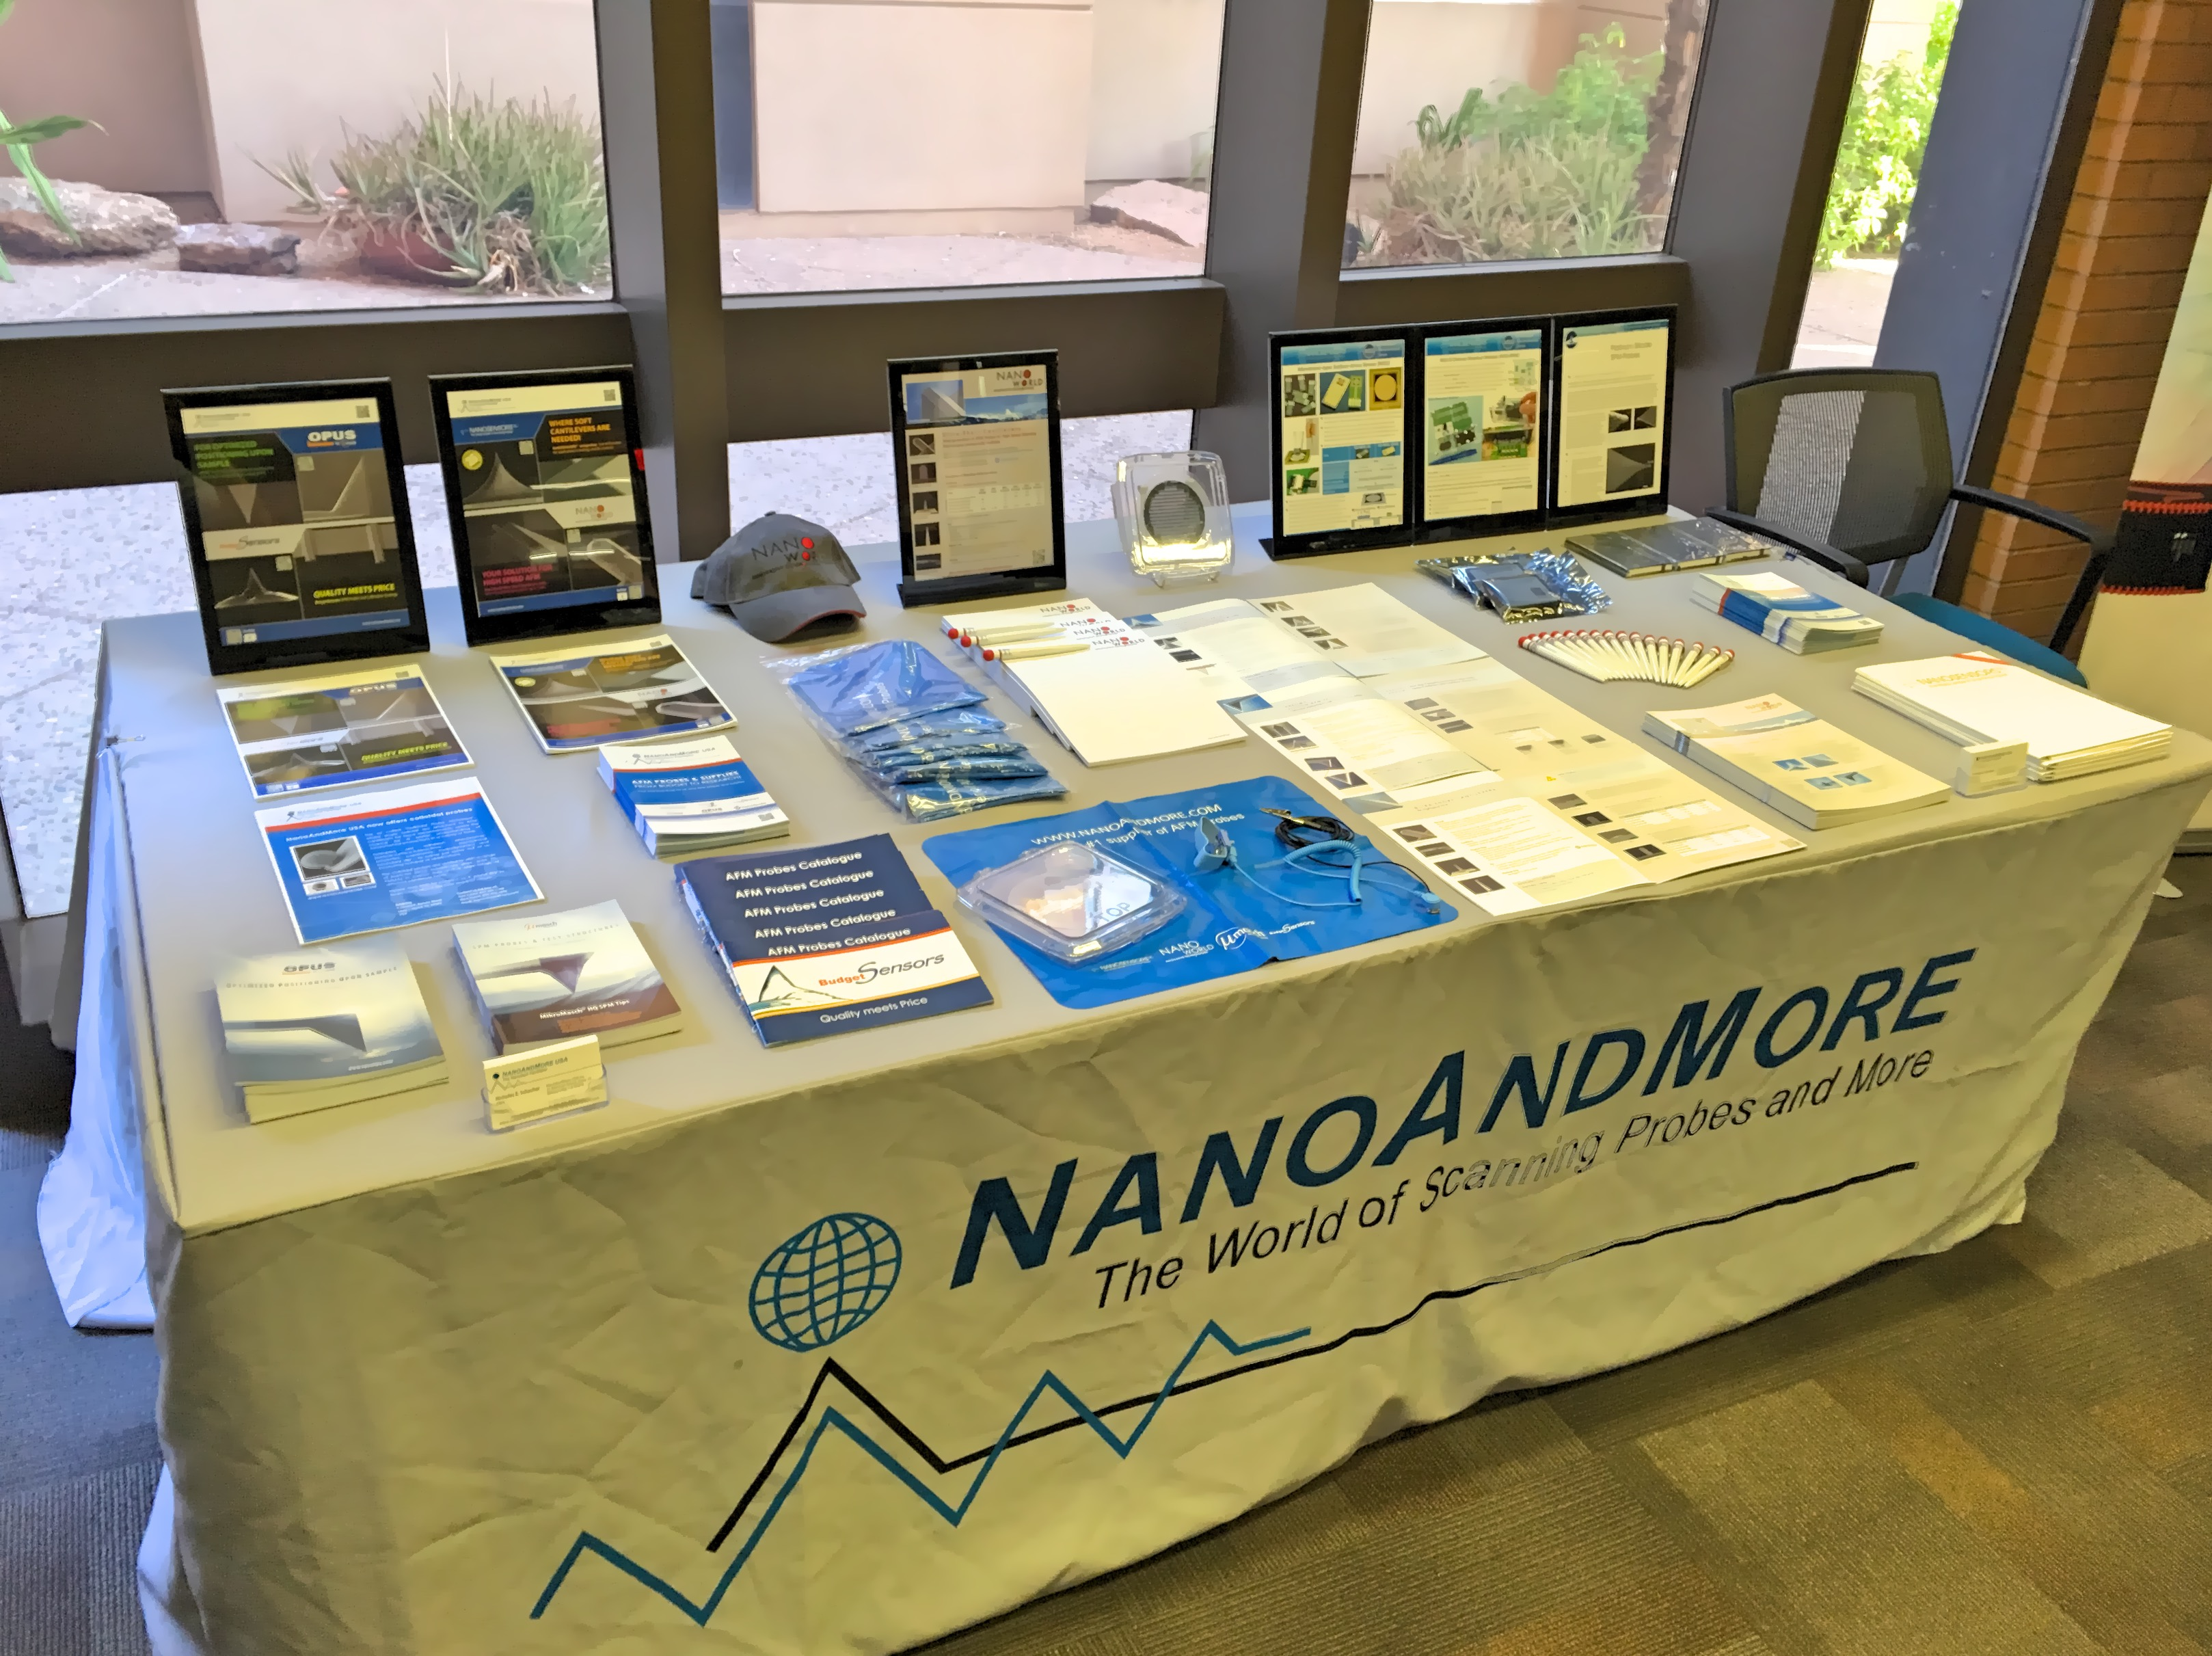 NanoAndMore USA table at the International Scanning Probe Microscopy 2018 conference at Arizona State University in Tempe Arizona